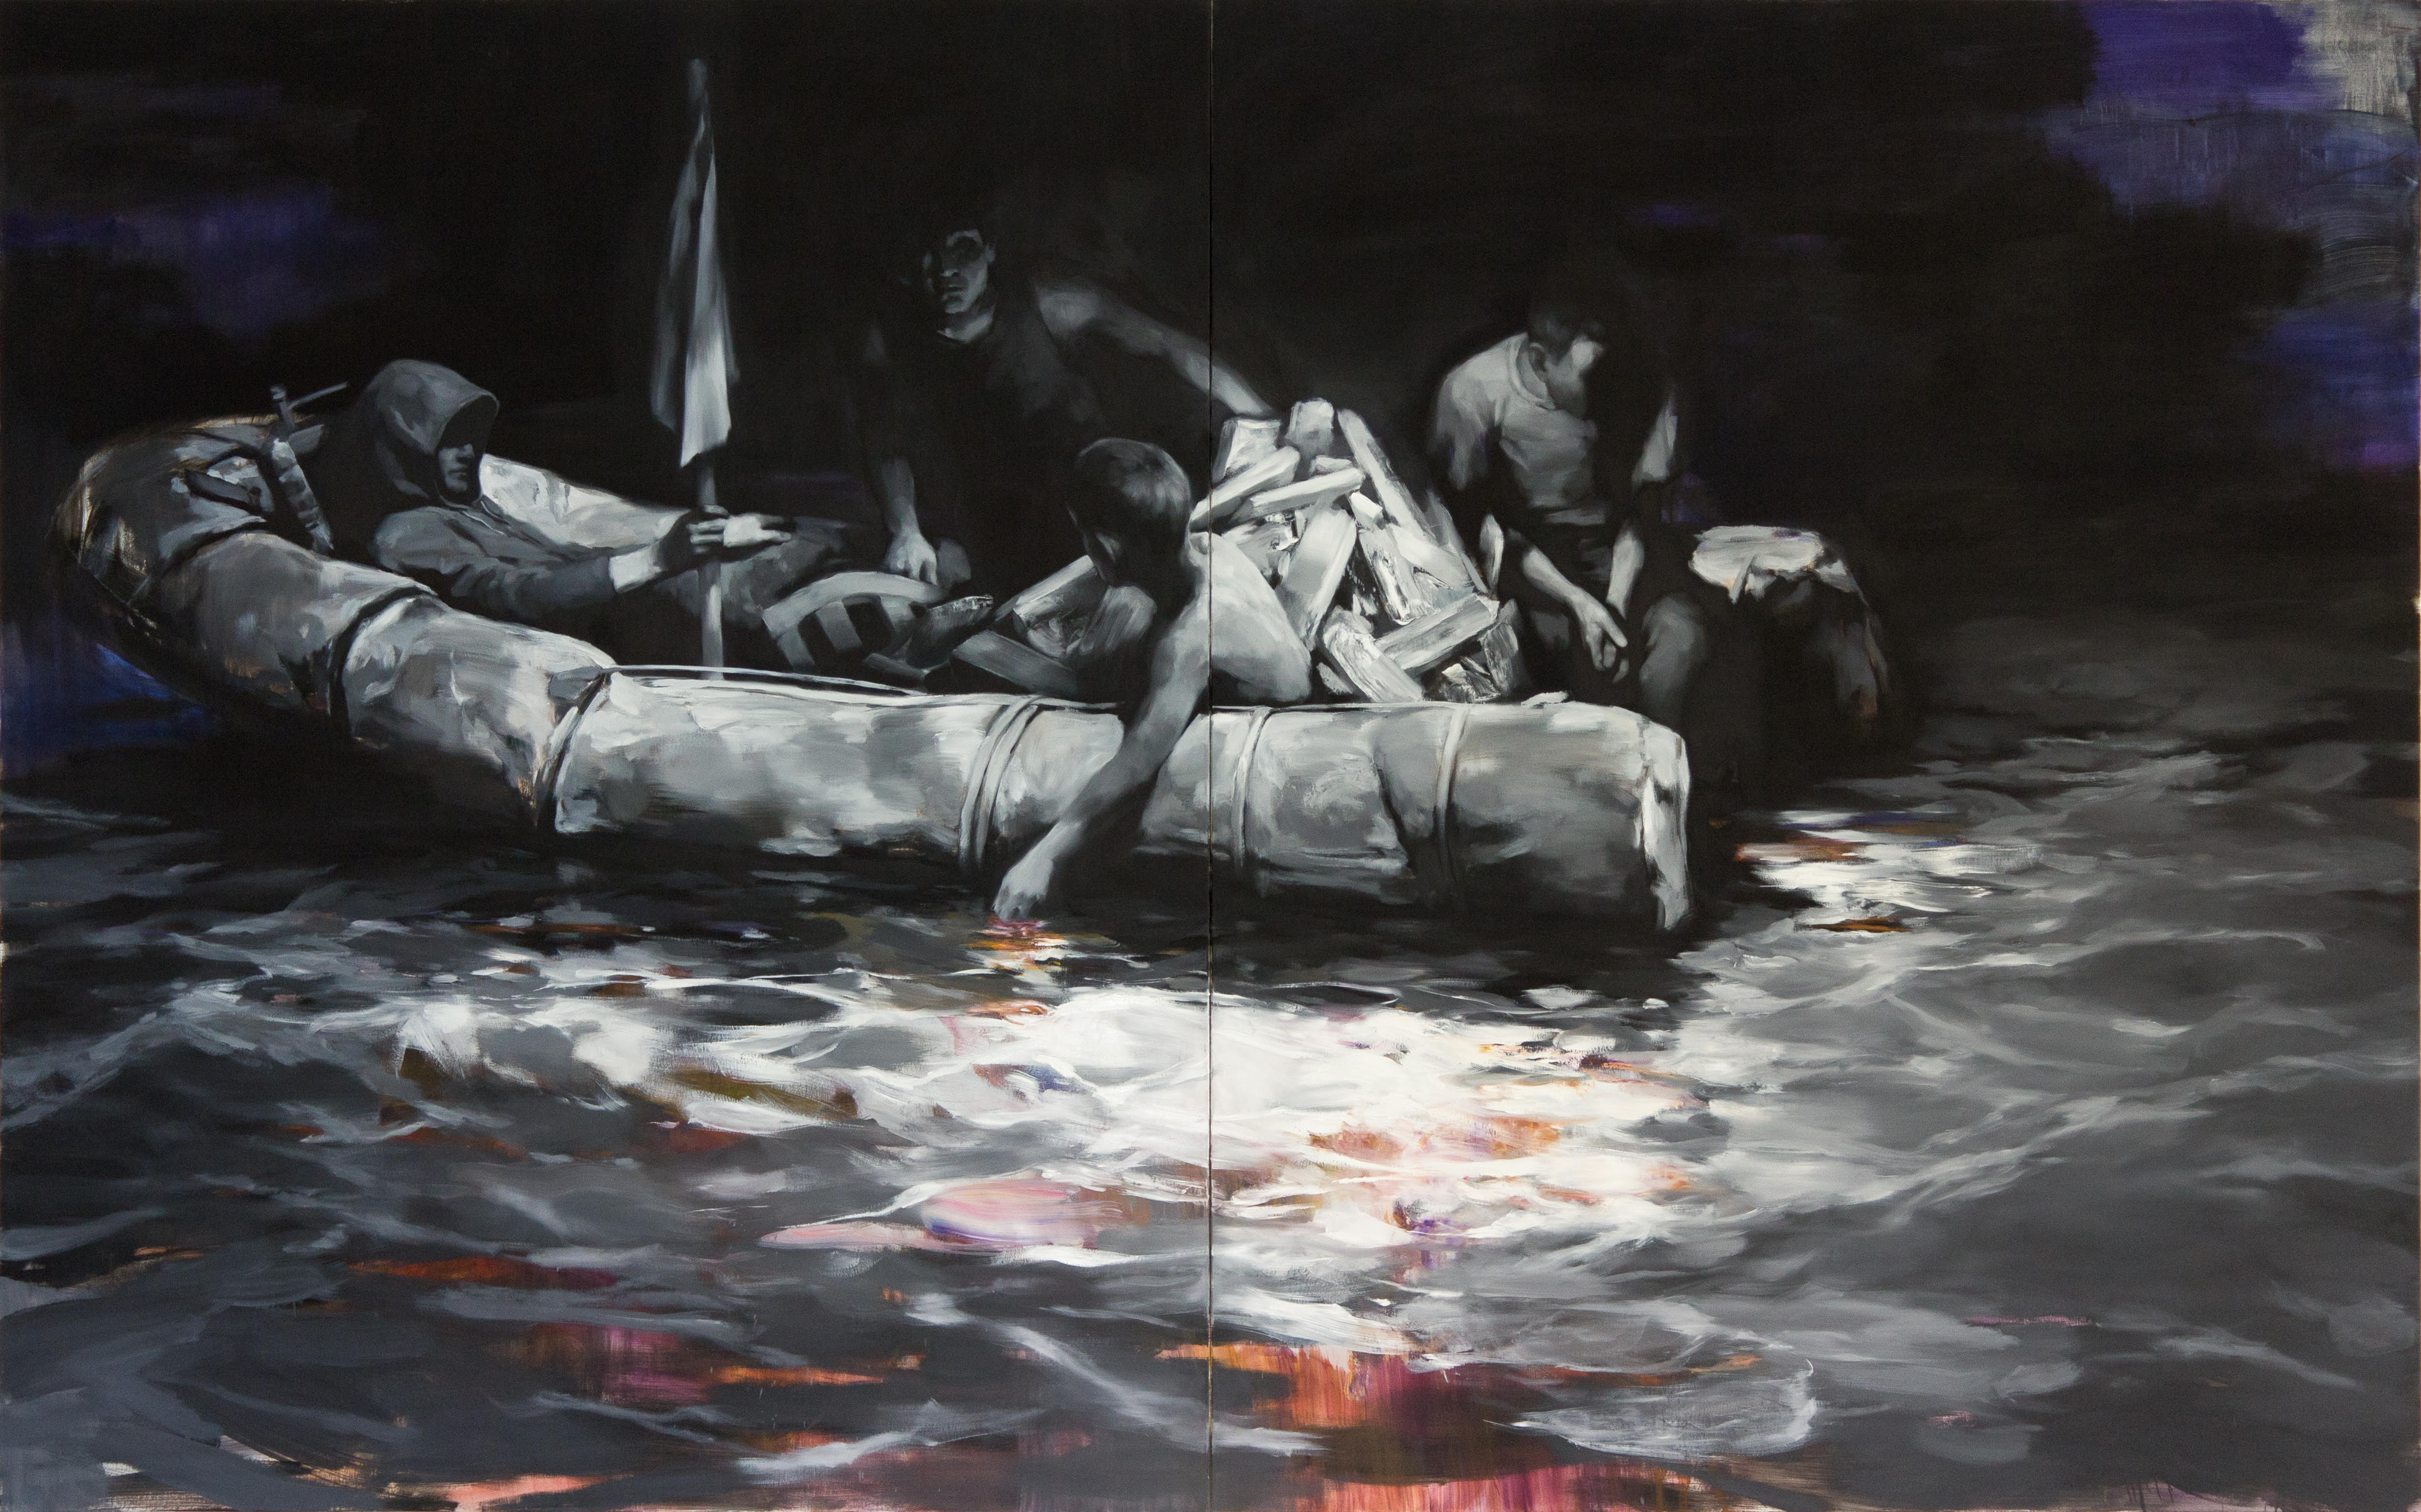 Floating 250x400 cm, oil on canvas, 2018 © Yongchul Kim